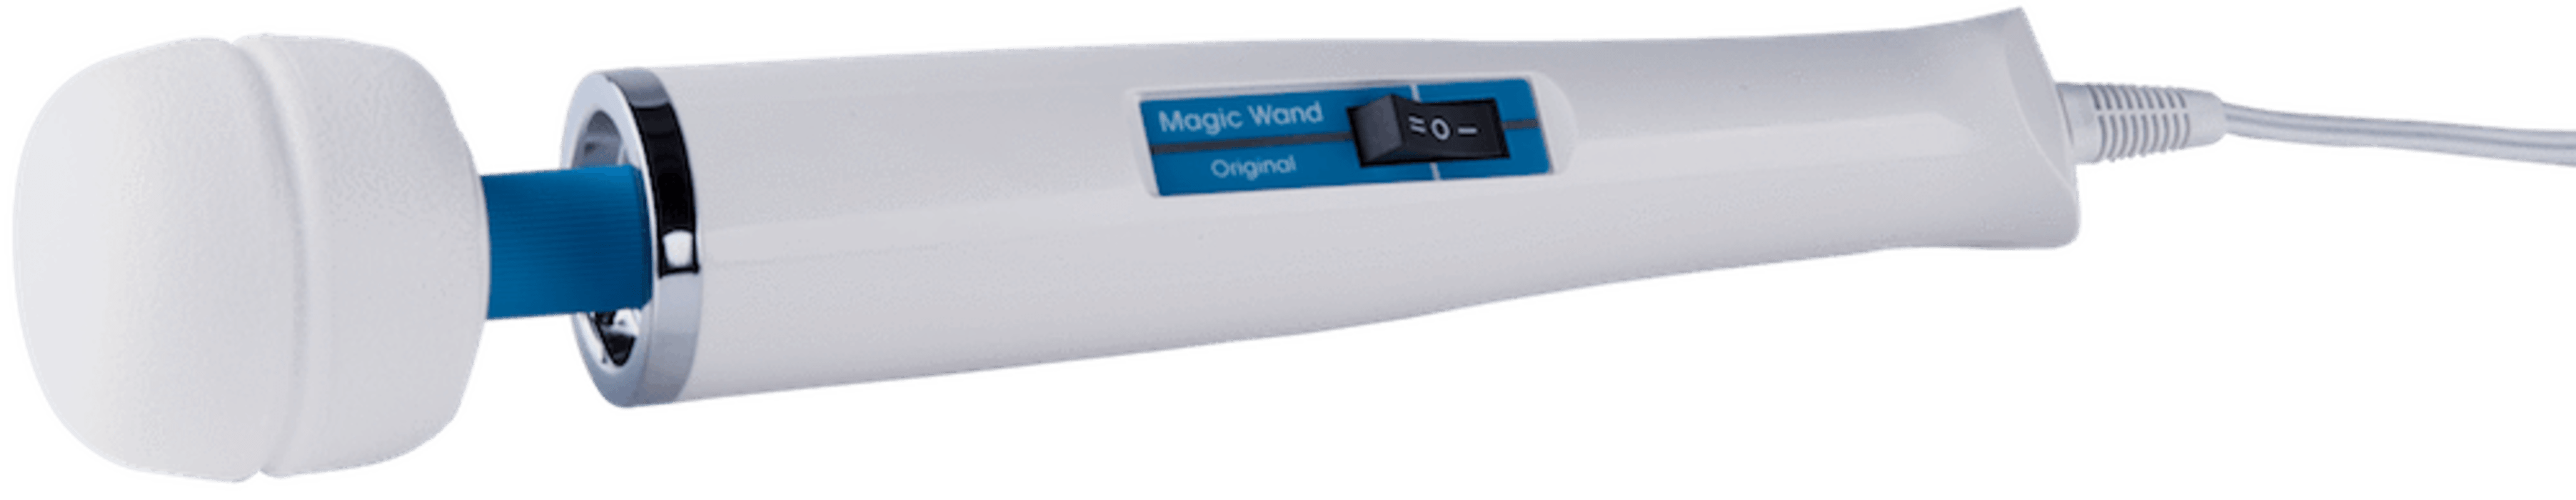 Original Magic Wand - Bellesa Sex Toys - Sex Toy Store